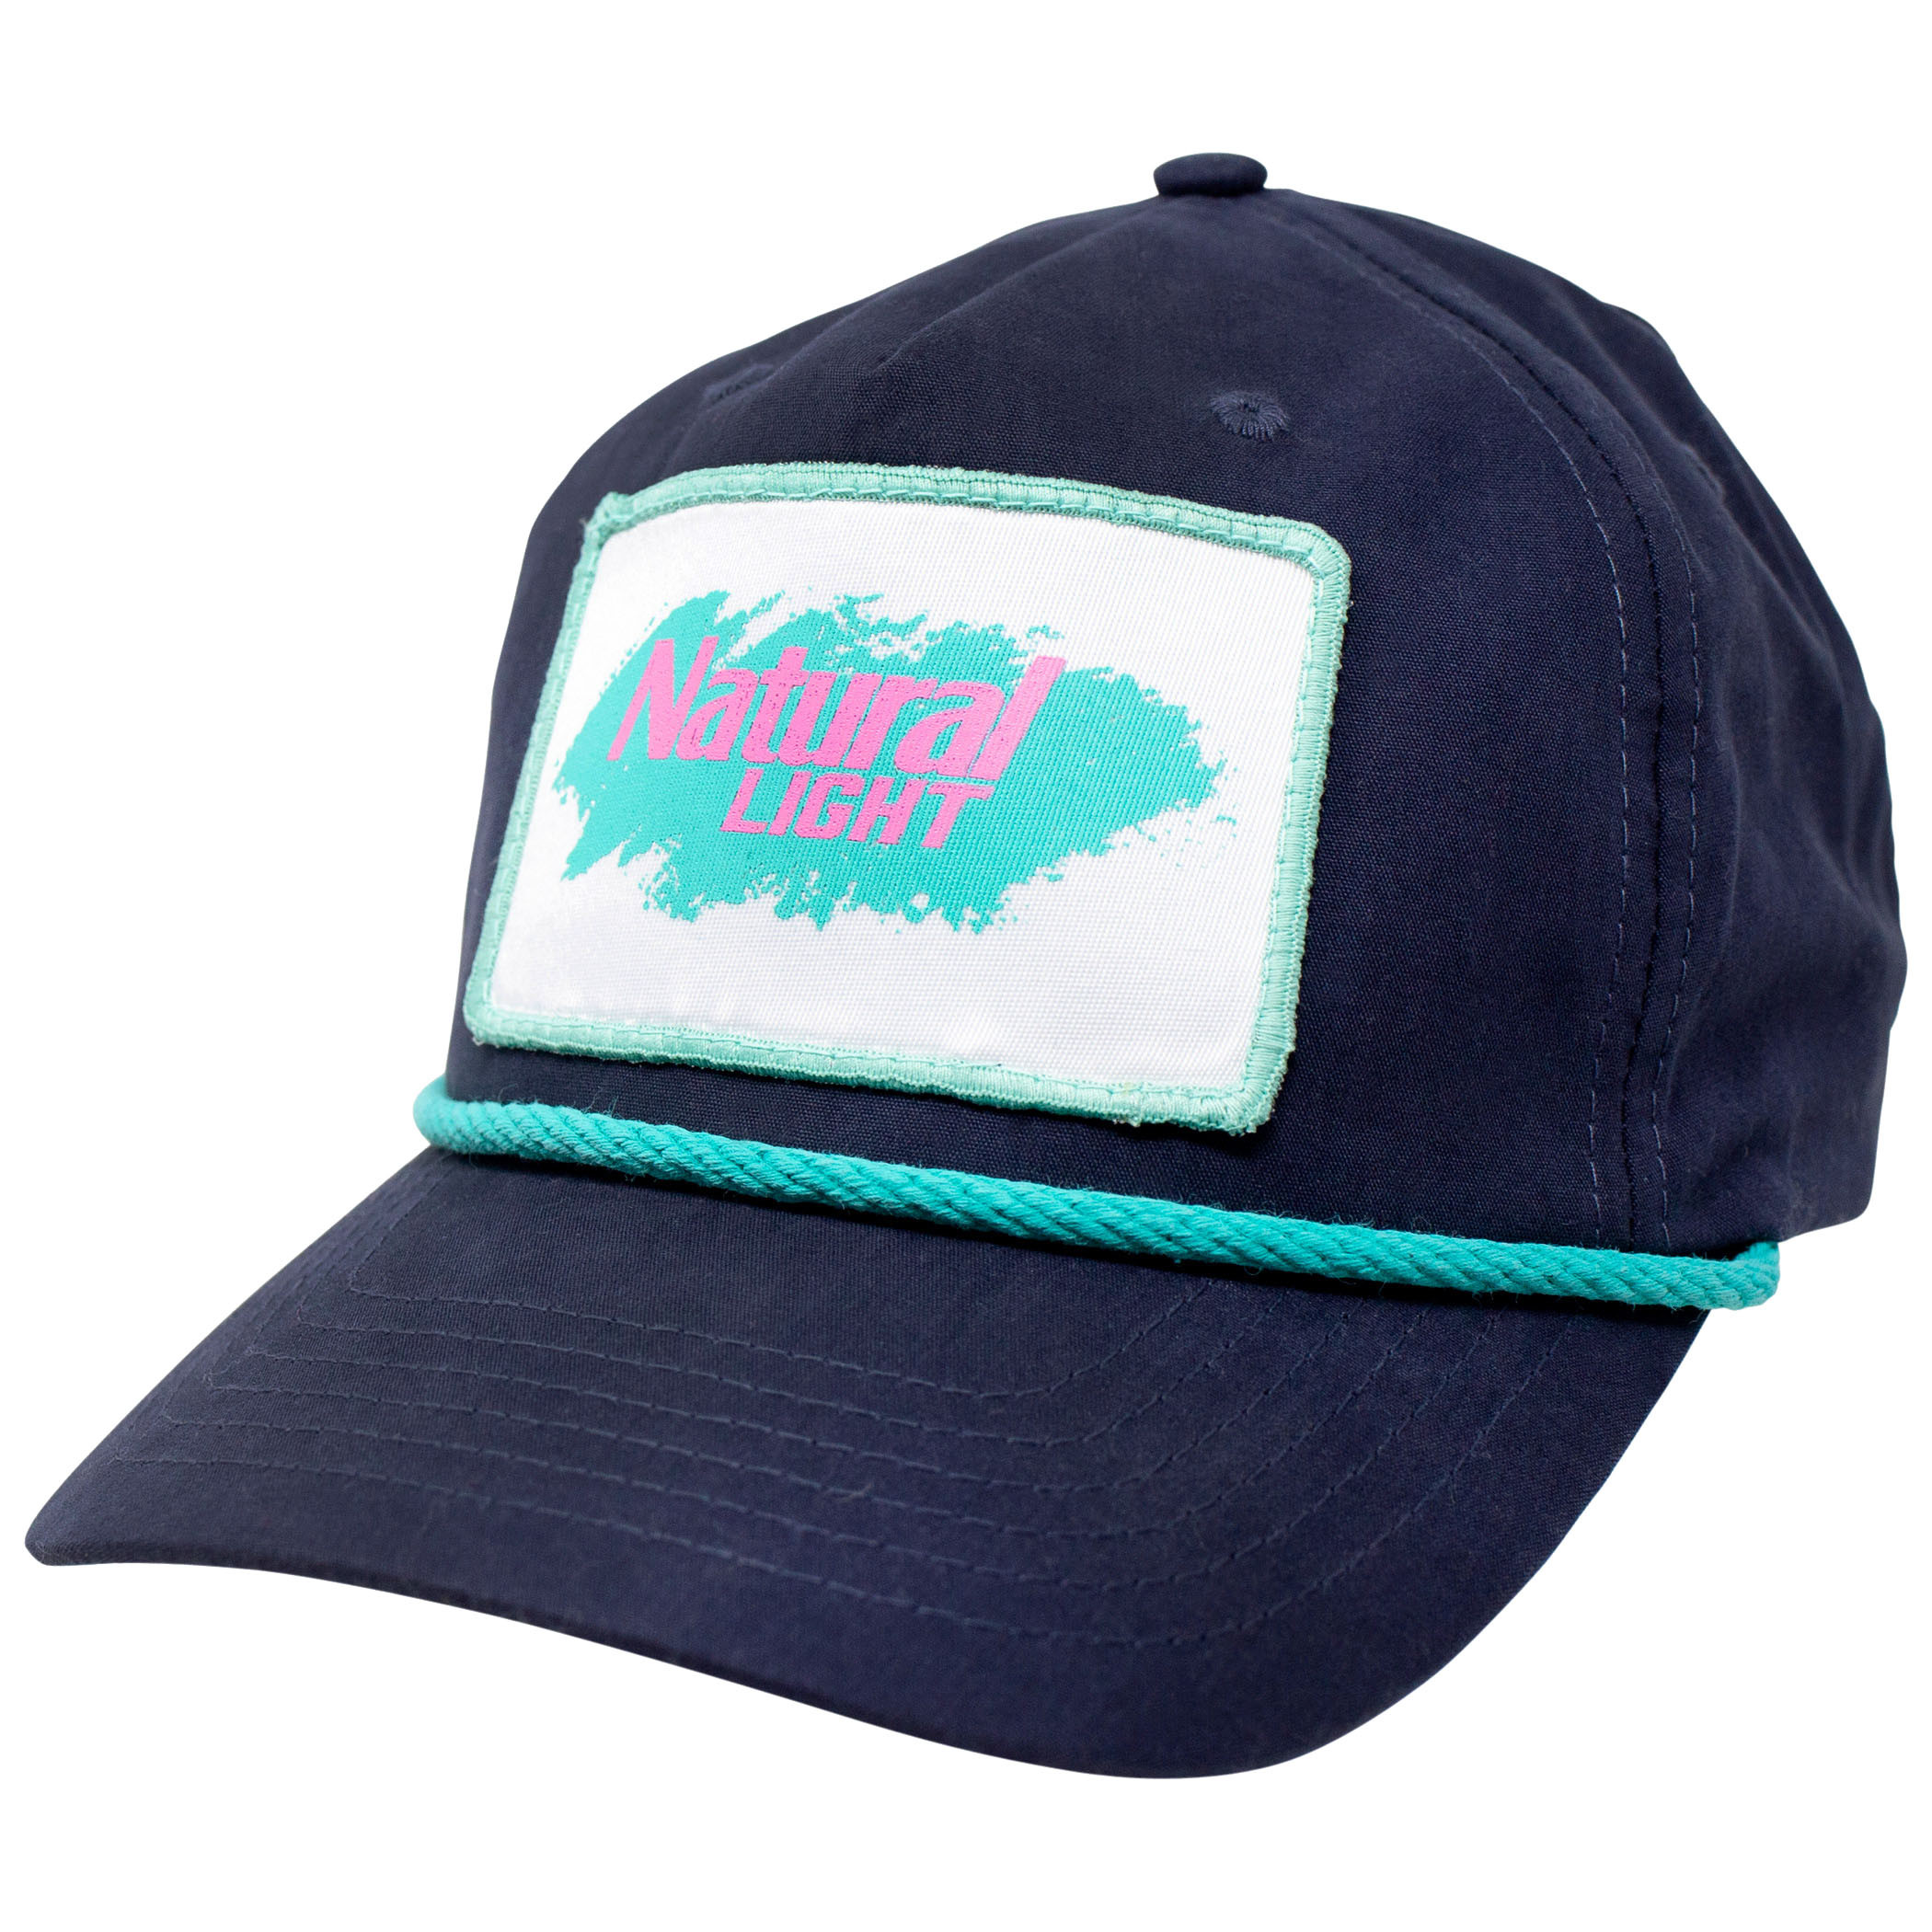 Natural Light Vintage Patch Hat